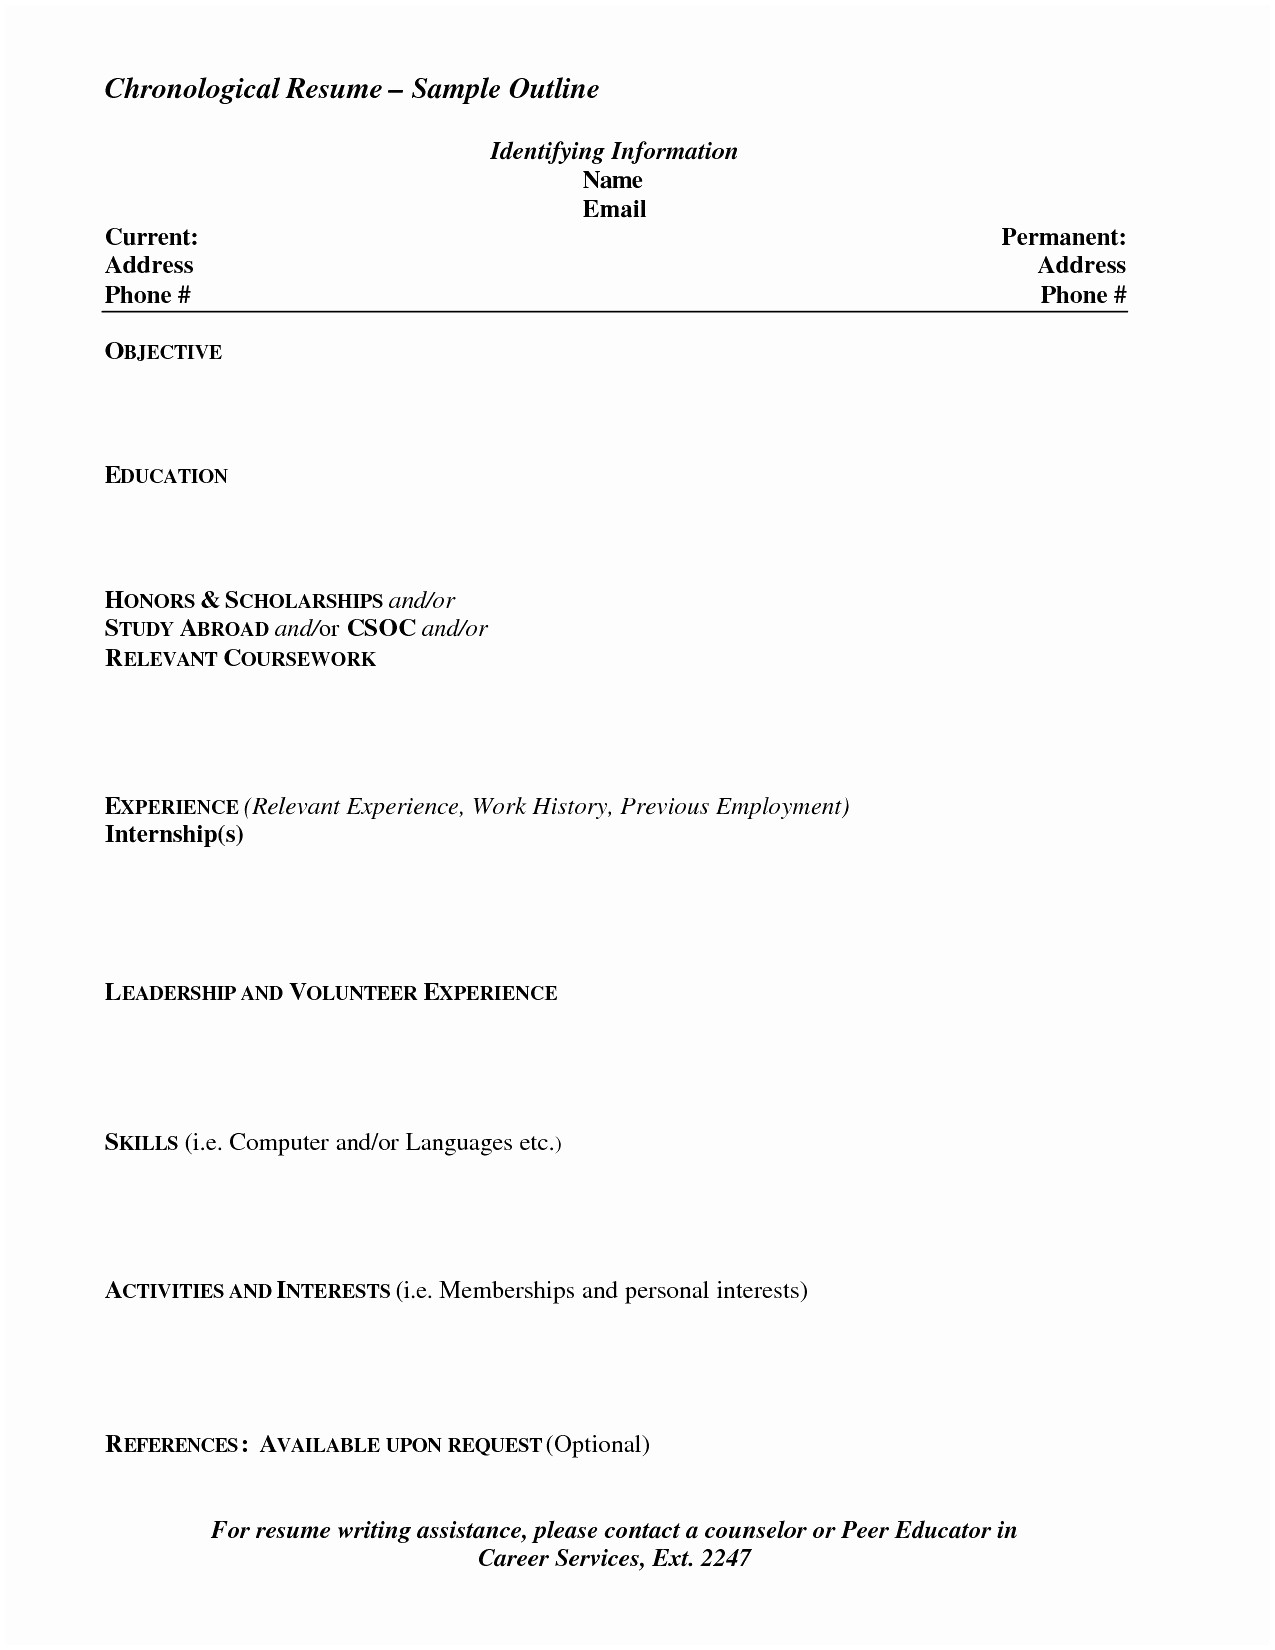 Letter Of Intent Template Free - Letter Intent to Purchase A Business